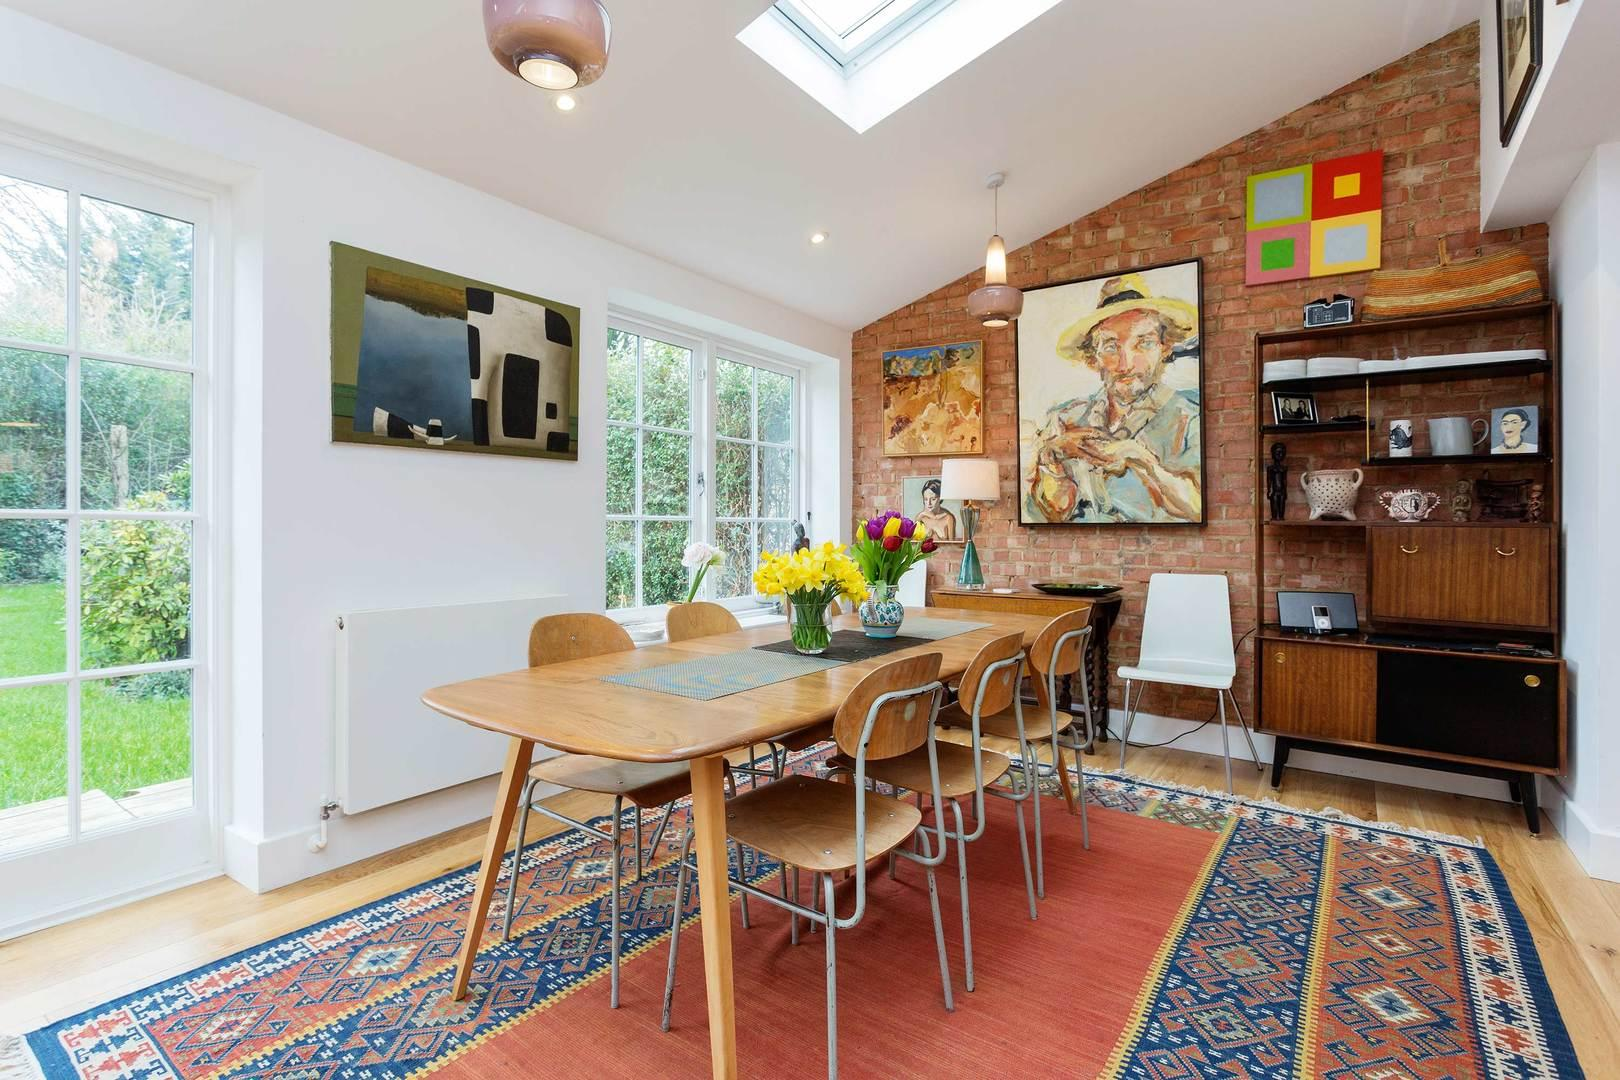 Property Image 2 - Charming Acton Family Home with Great Artwork